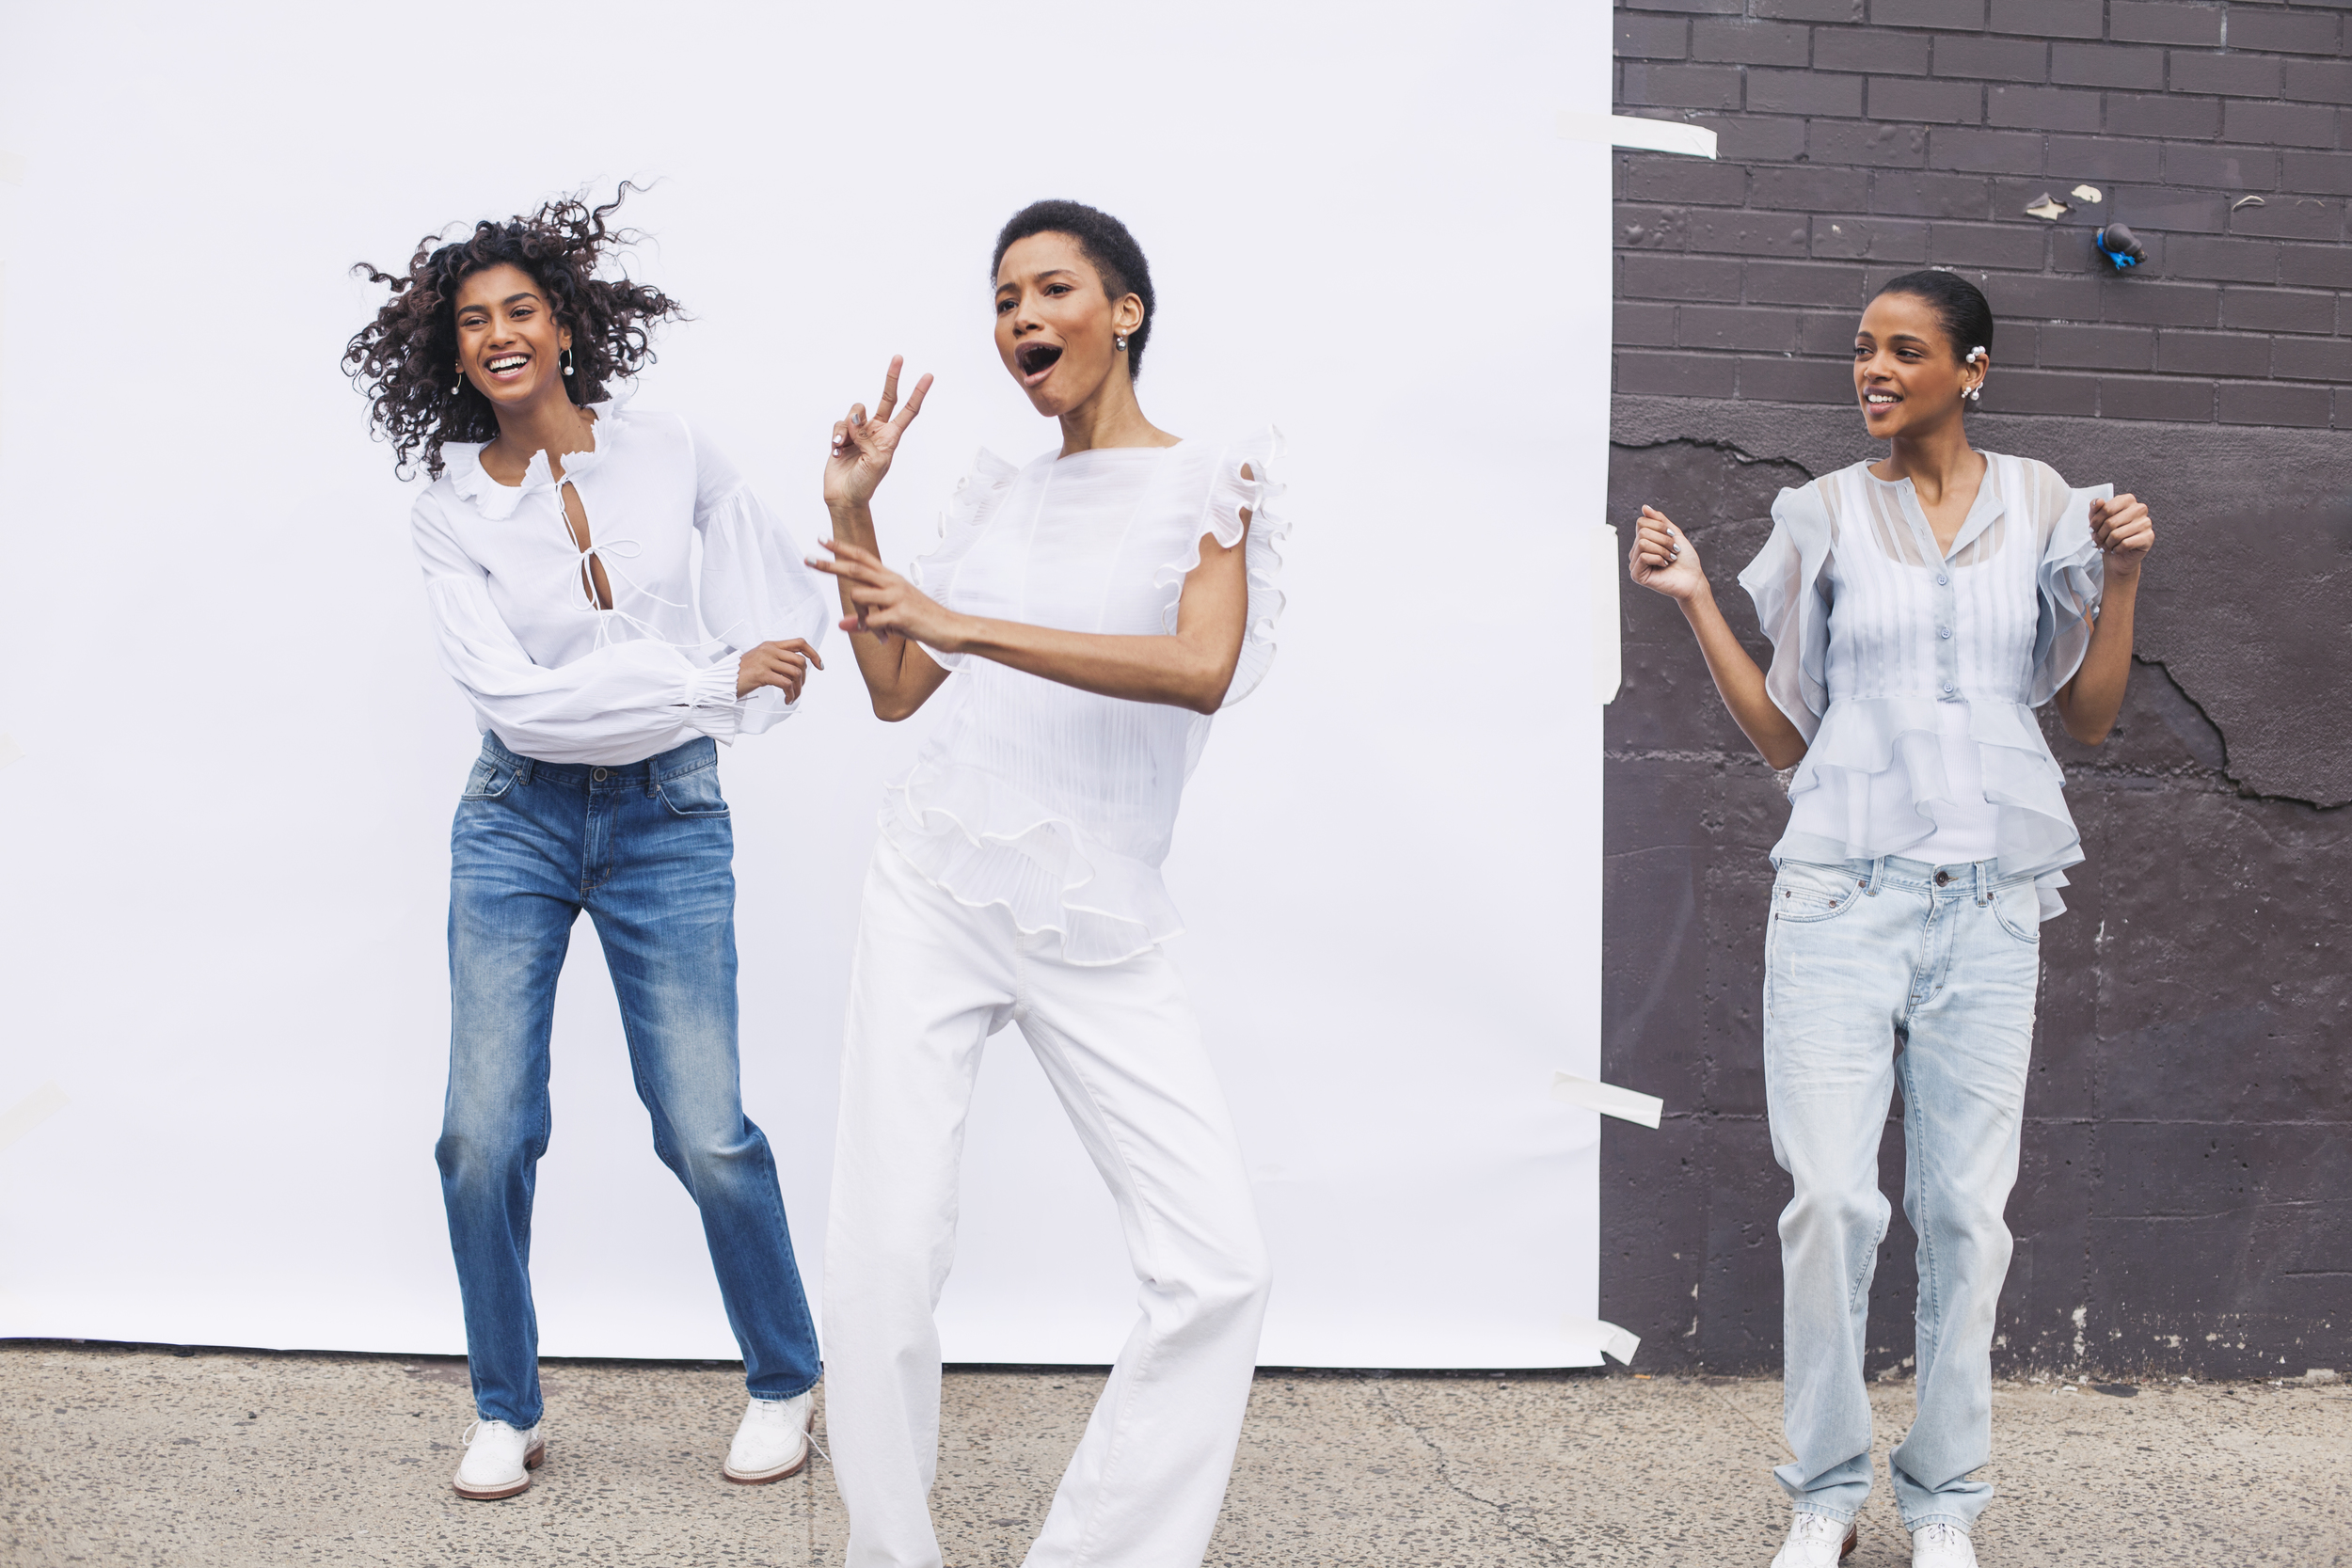 imaan hammam, lineisy montero, and aya jones